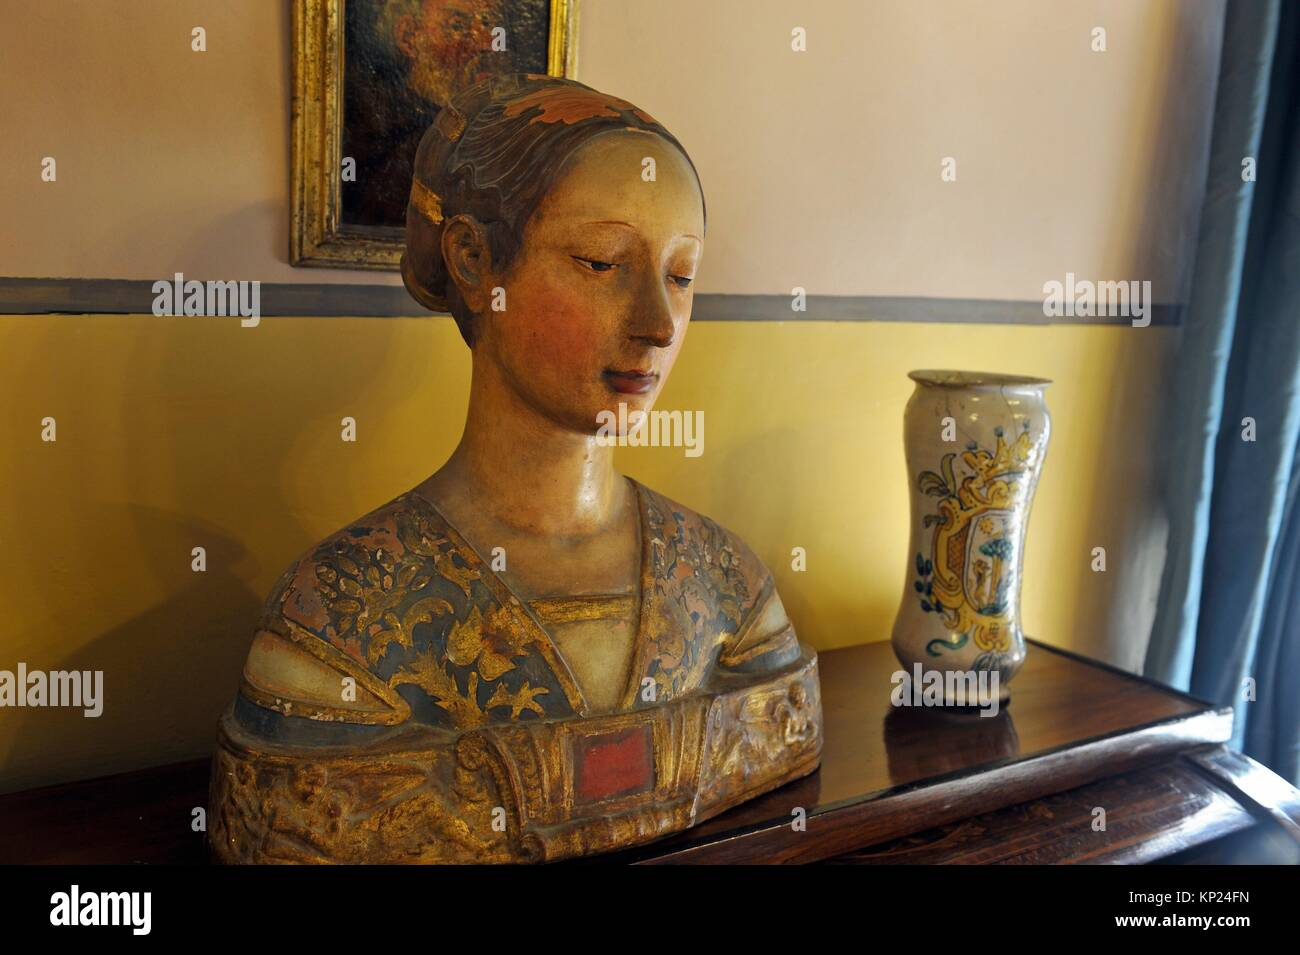 polychrome bust of woman at the Casa Rocca Piccola, Valletta, Malta, Southern Europe. - Stock Image